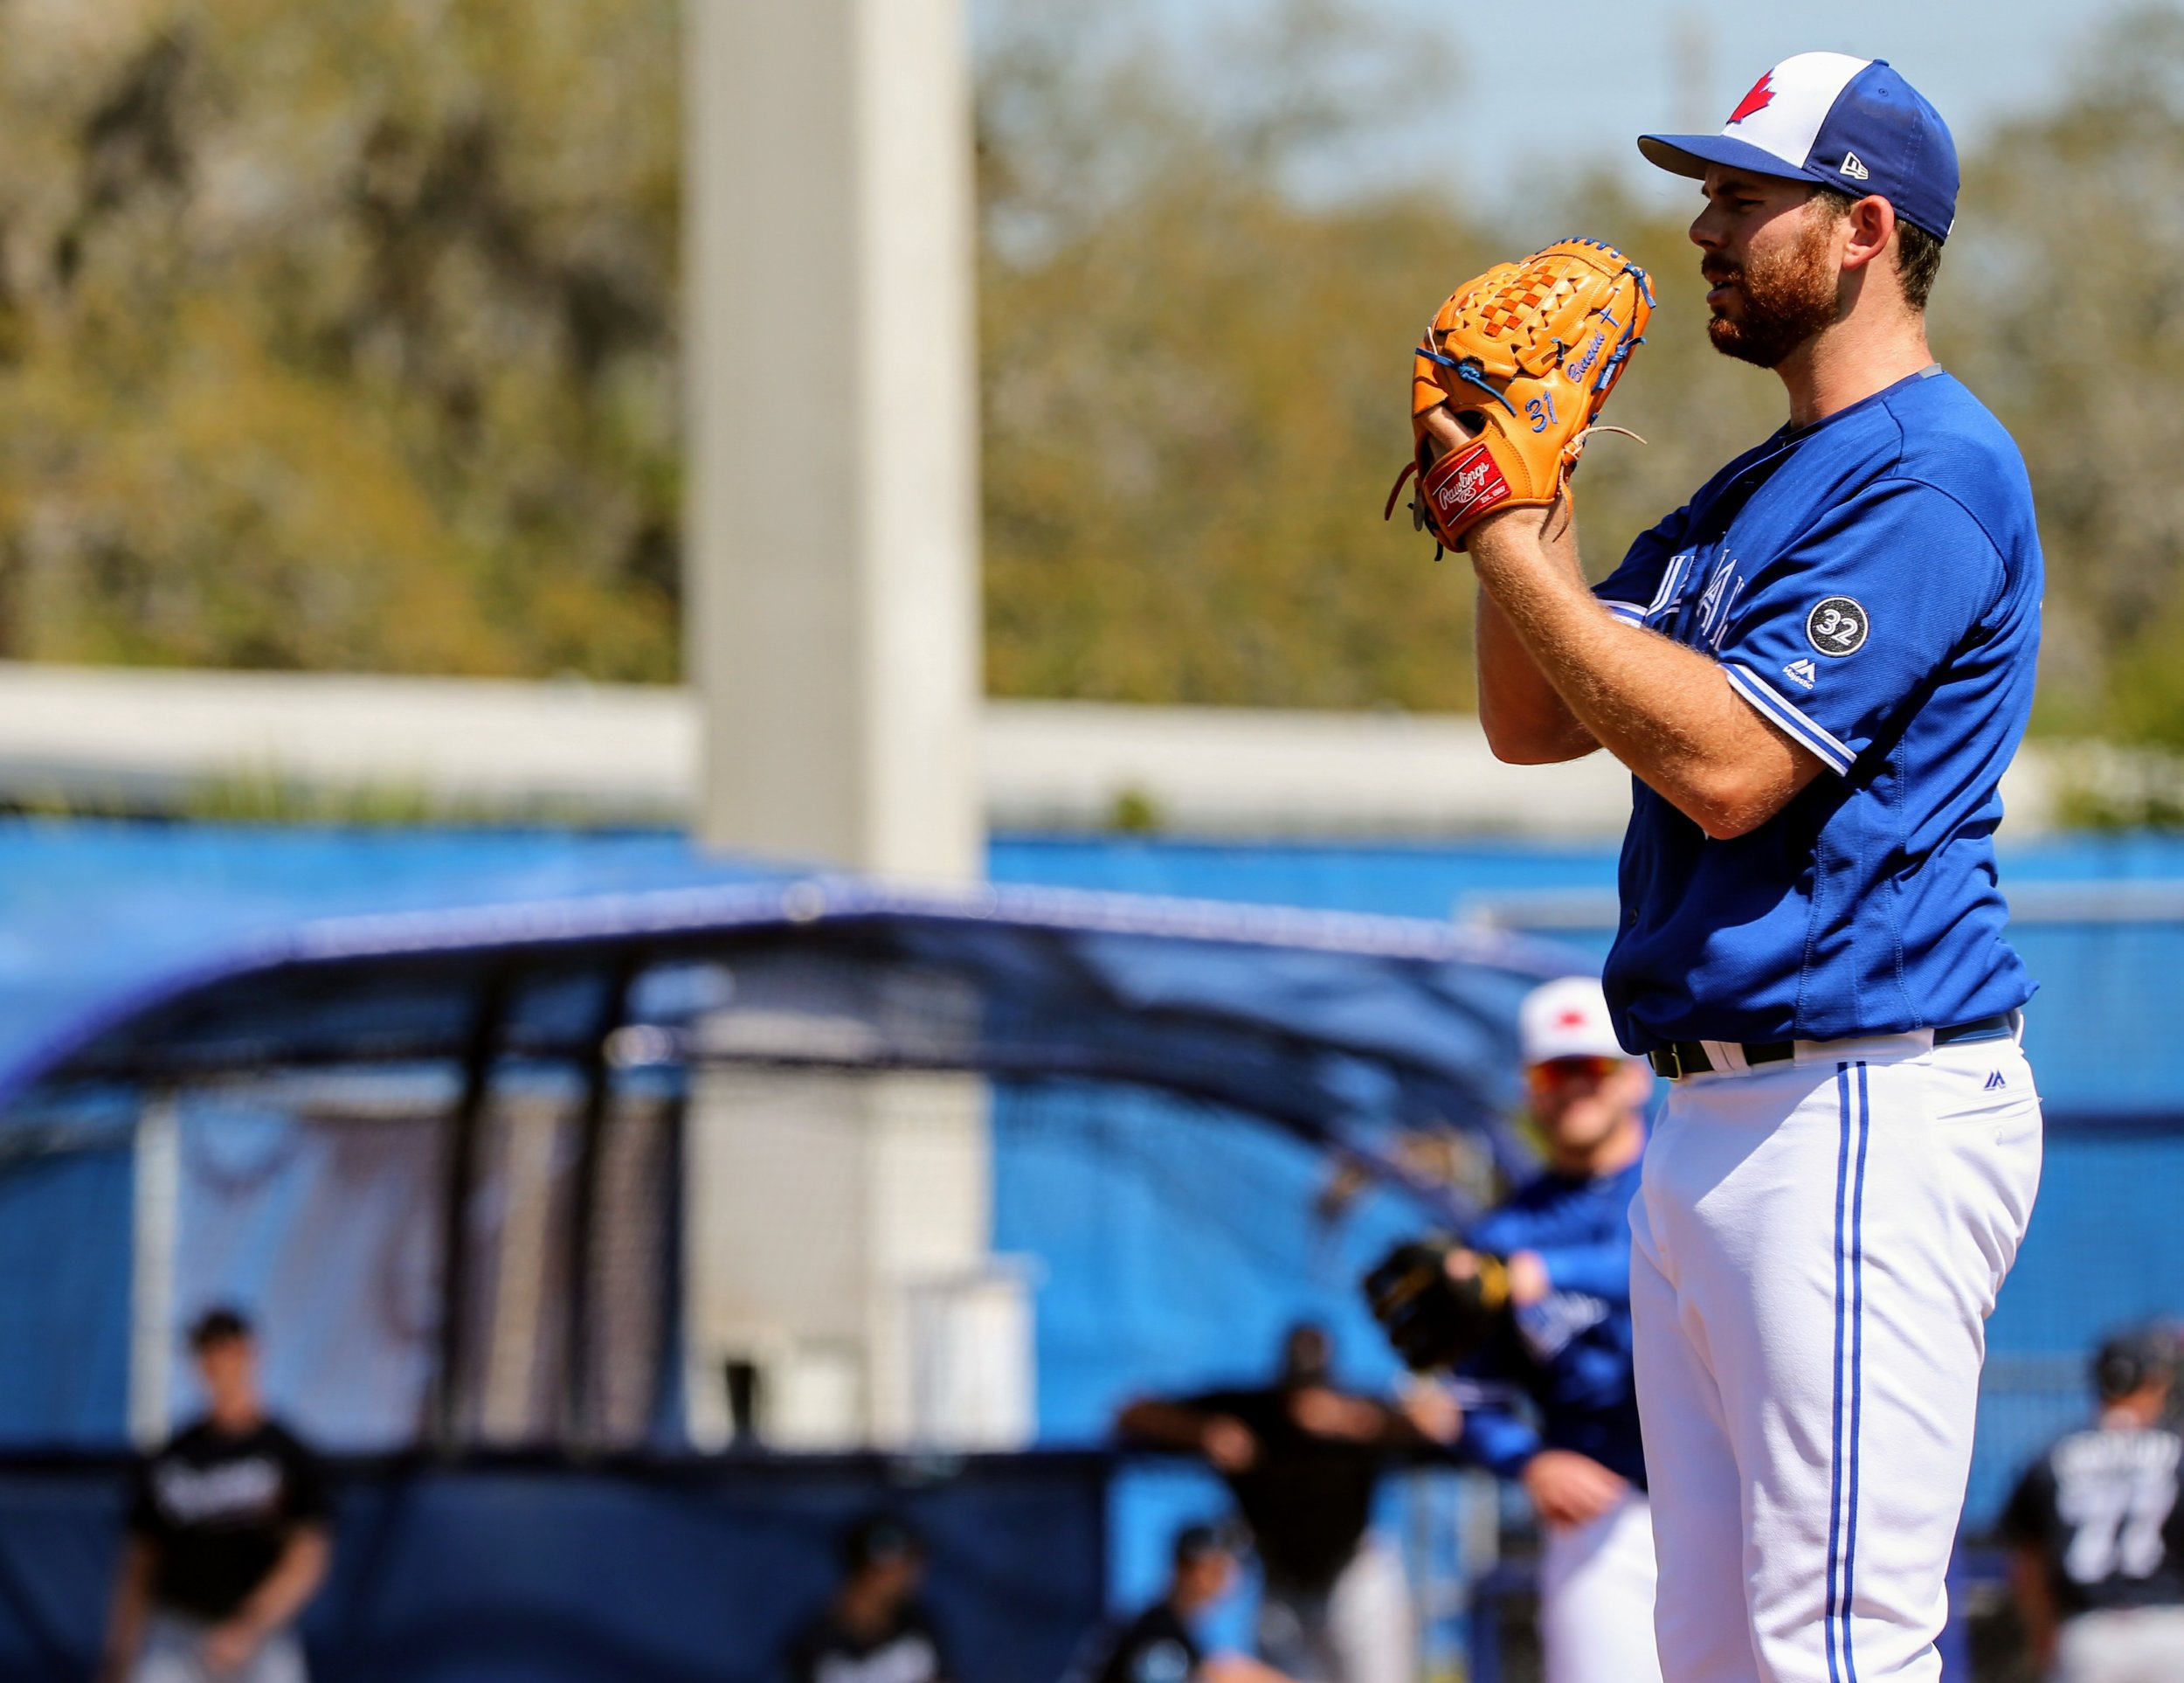 Right-hander Joe Biagini started for the Blue Jays and allowed three runs in 3 1/3 innings to take the loss.